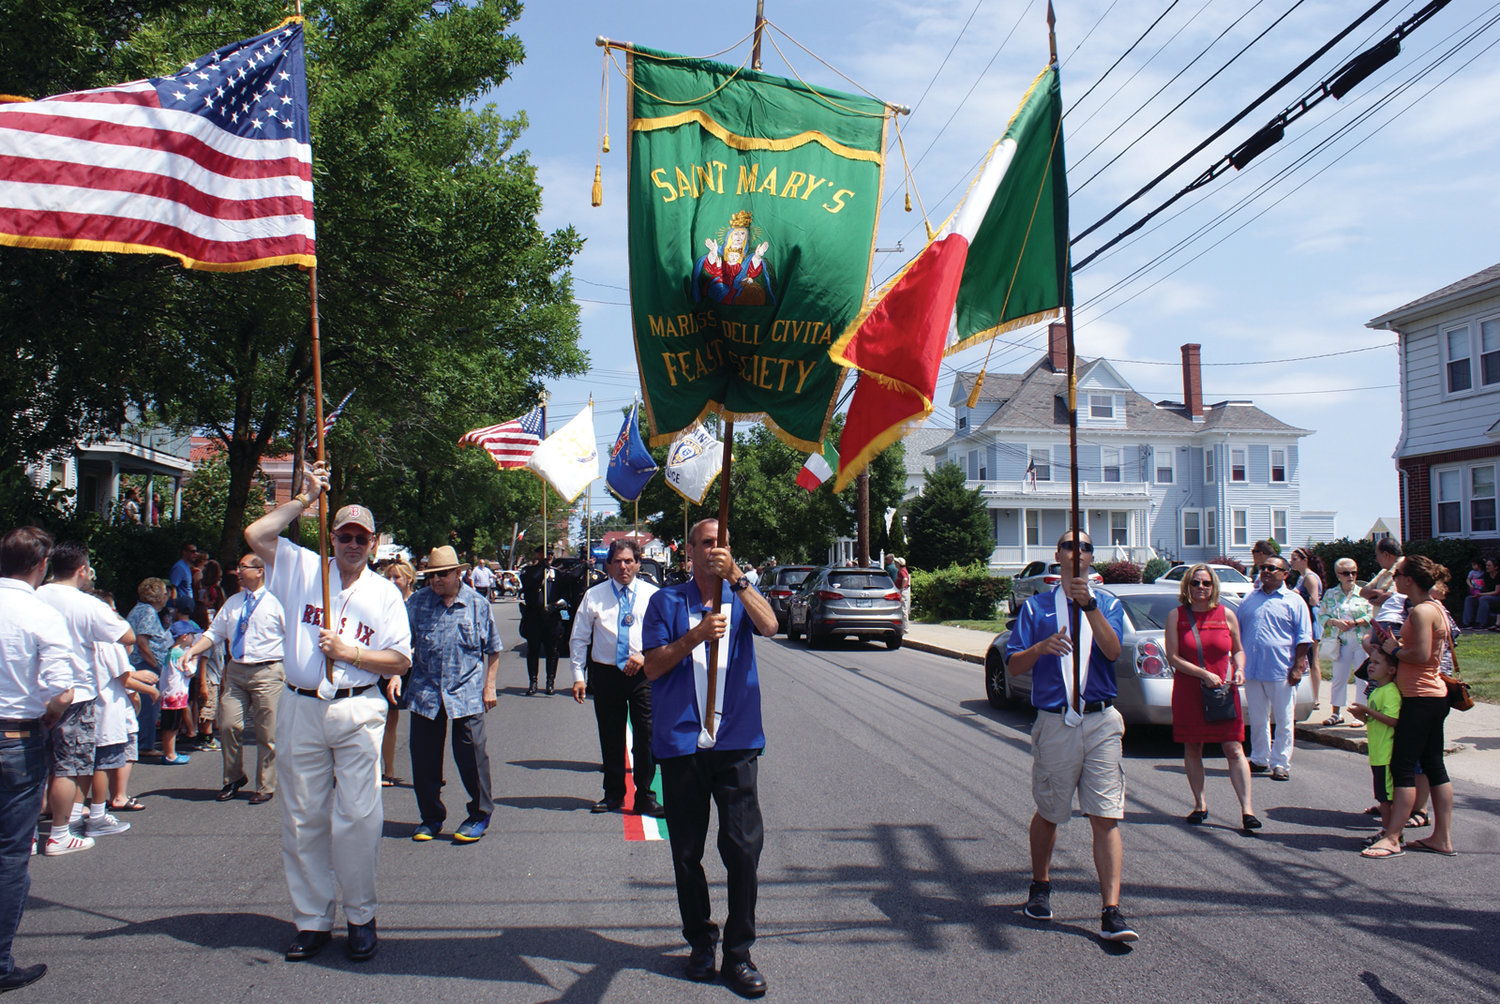 JAM-PACKED SCHEDULE: This year's St. Mary's Feast features a full slate, including entertainment from Classic Blend, DJ Eddie the Fixer and Domenic DePasquale, as well as the 47th annual 5.5-mile road race.